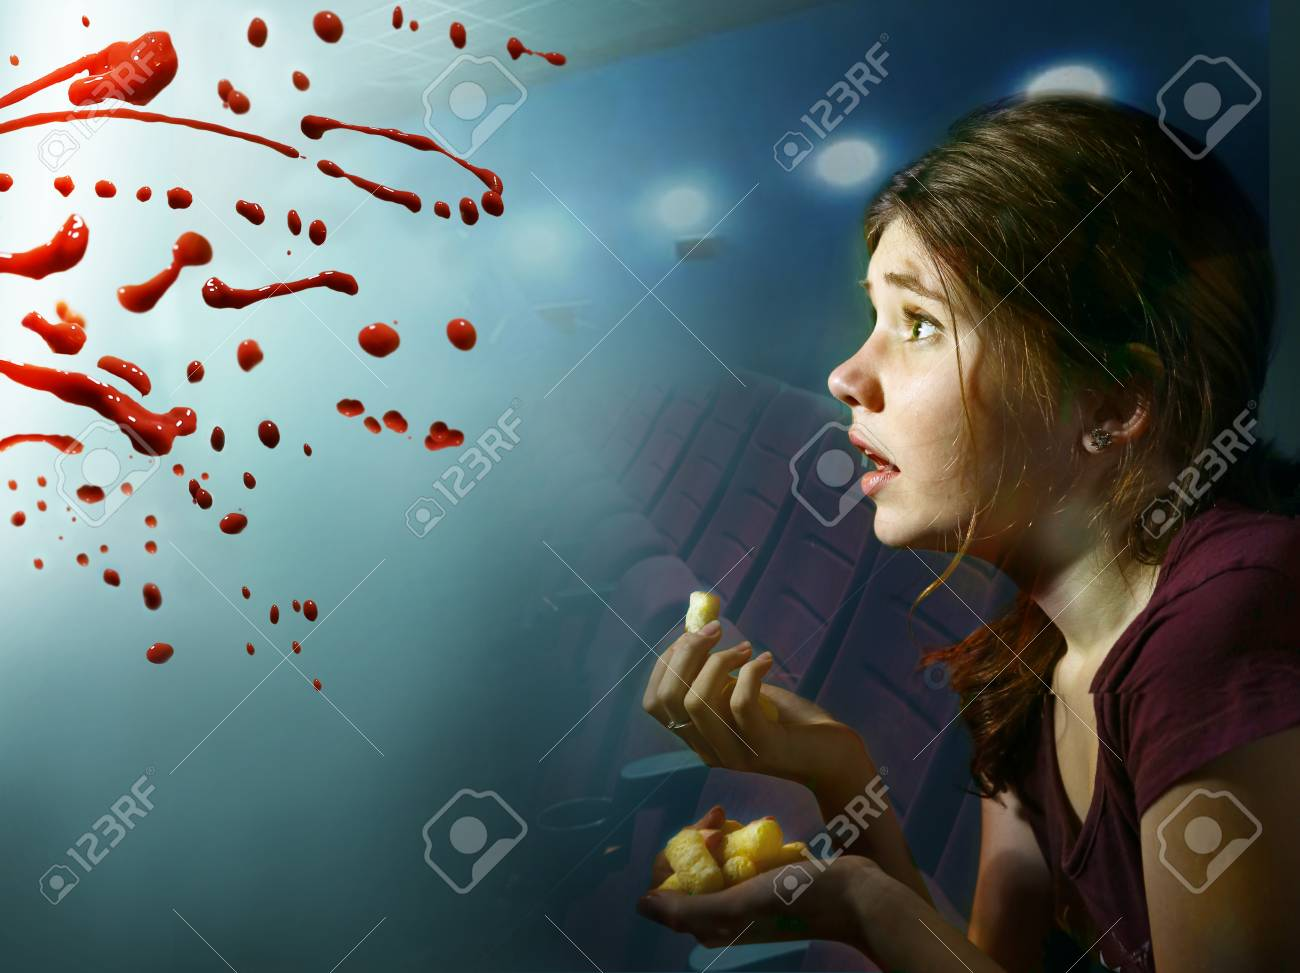 Stock Photo - teen girl watching horror movie with pop corn